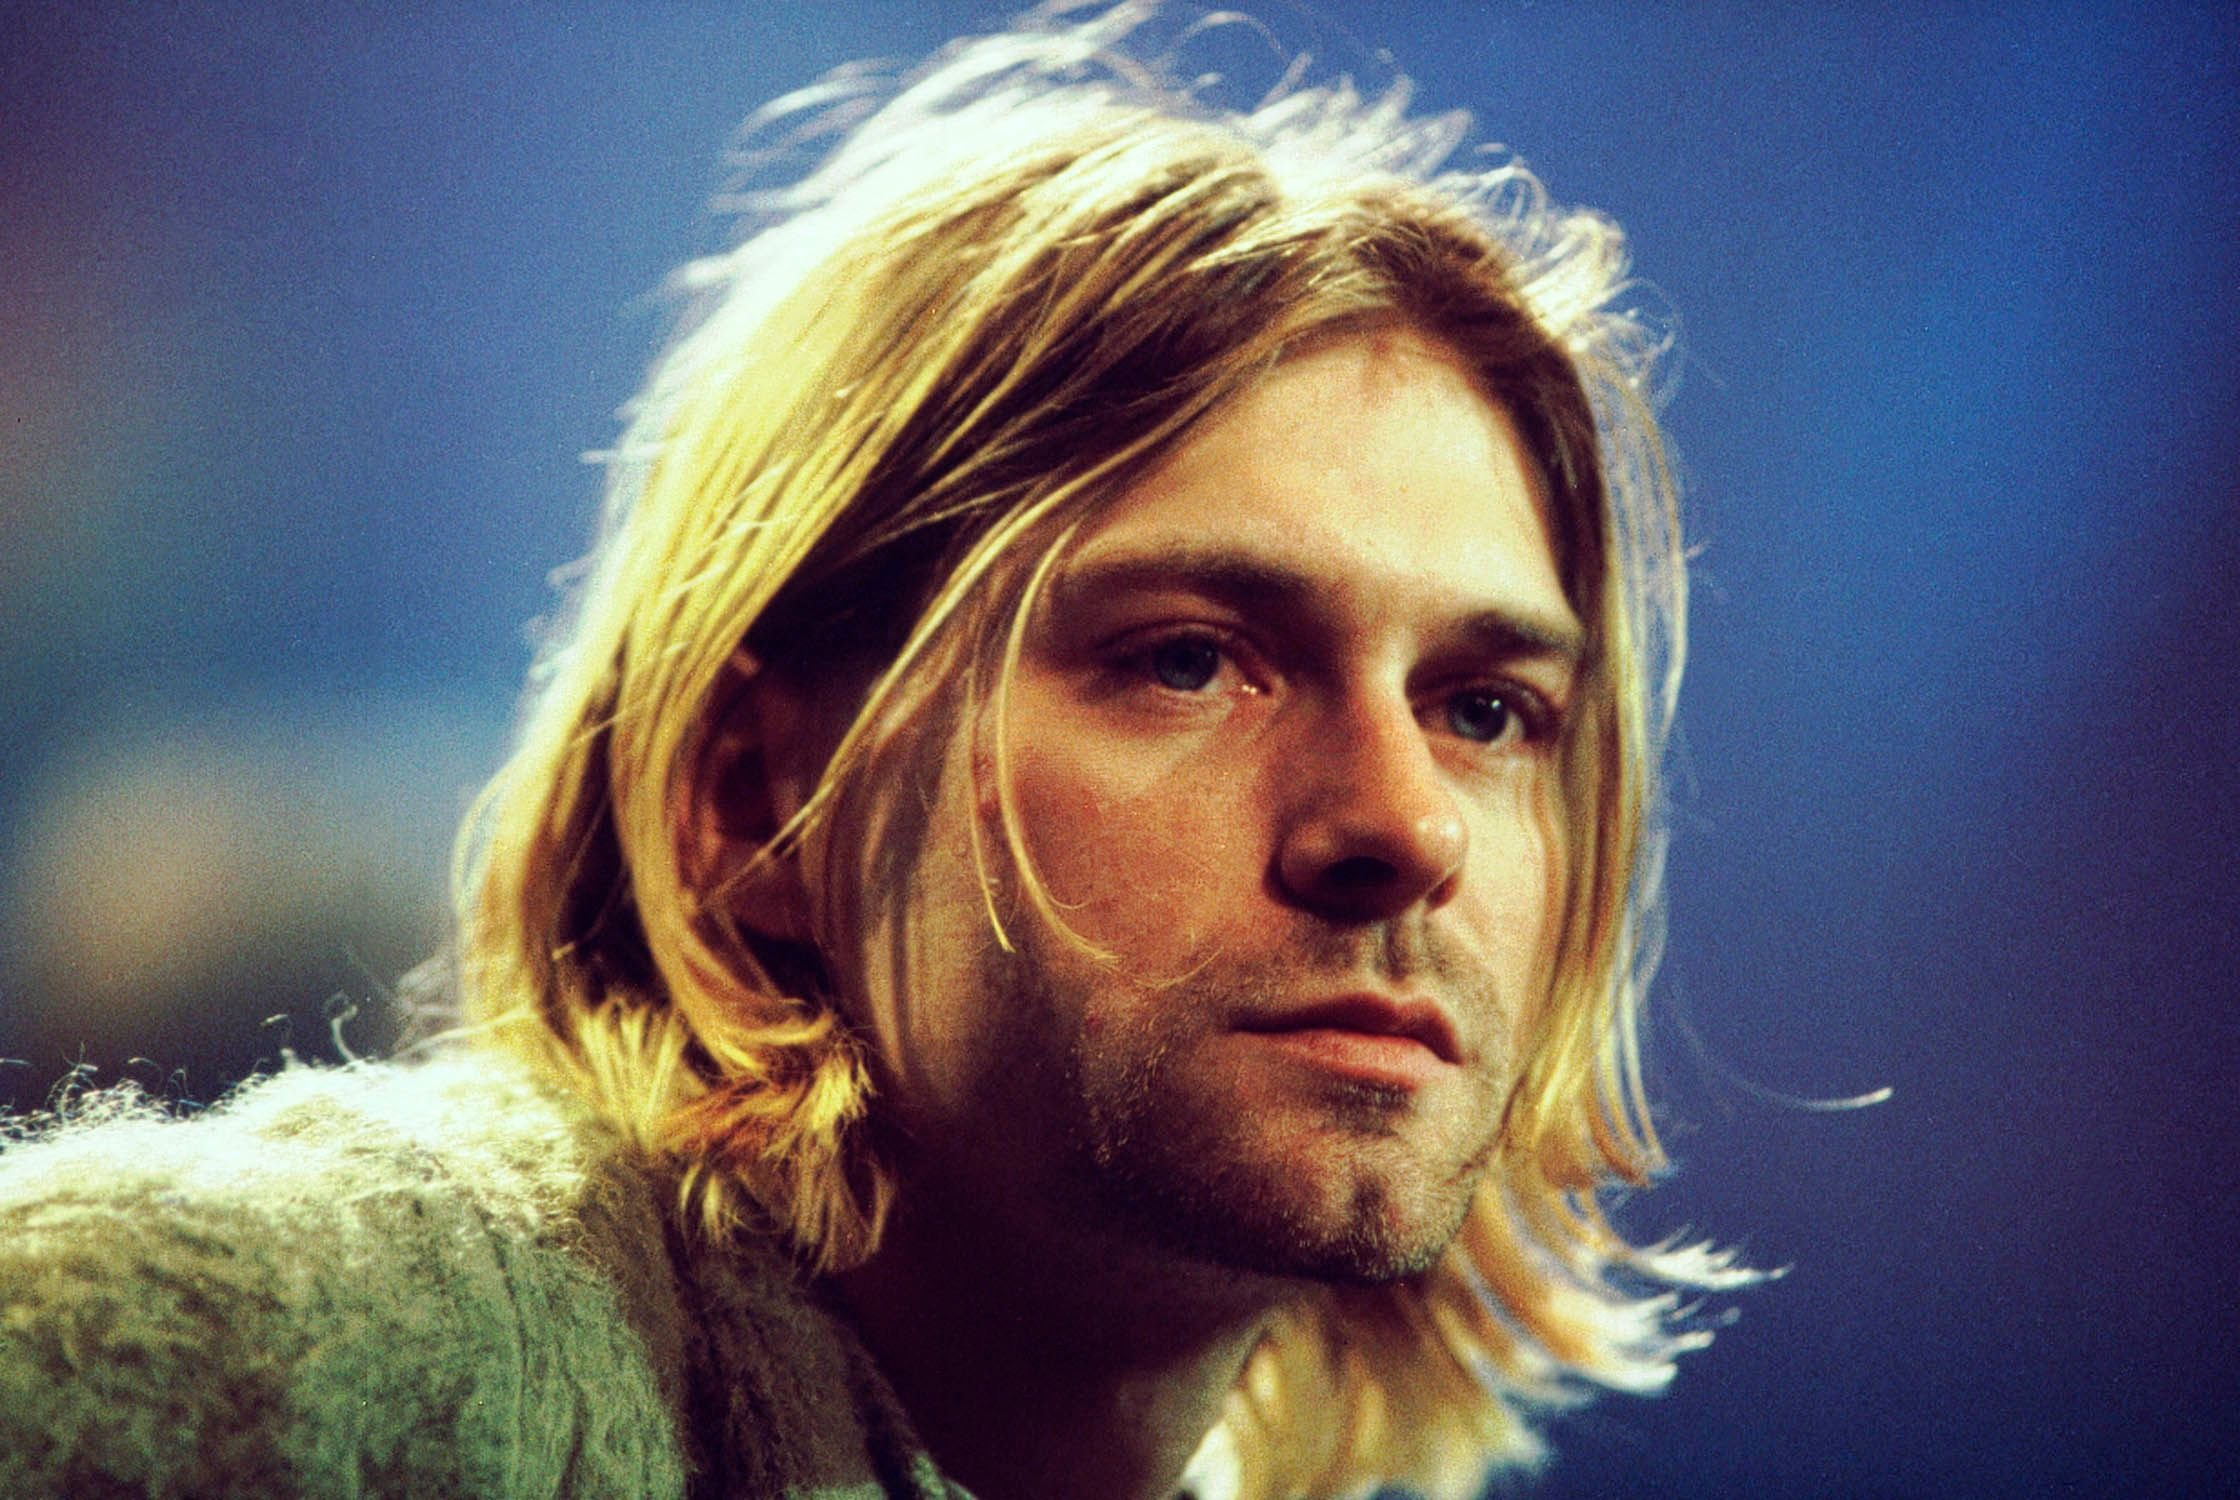 Kurt Cobain during the taping of MTV Unplugged at Sony Studios in 1993 in New York City | Source: Getty Images